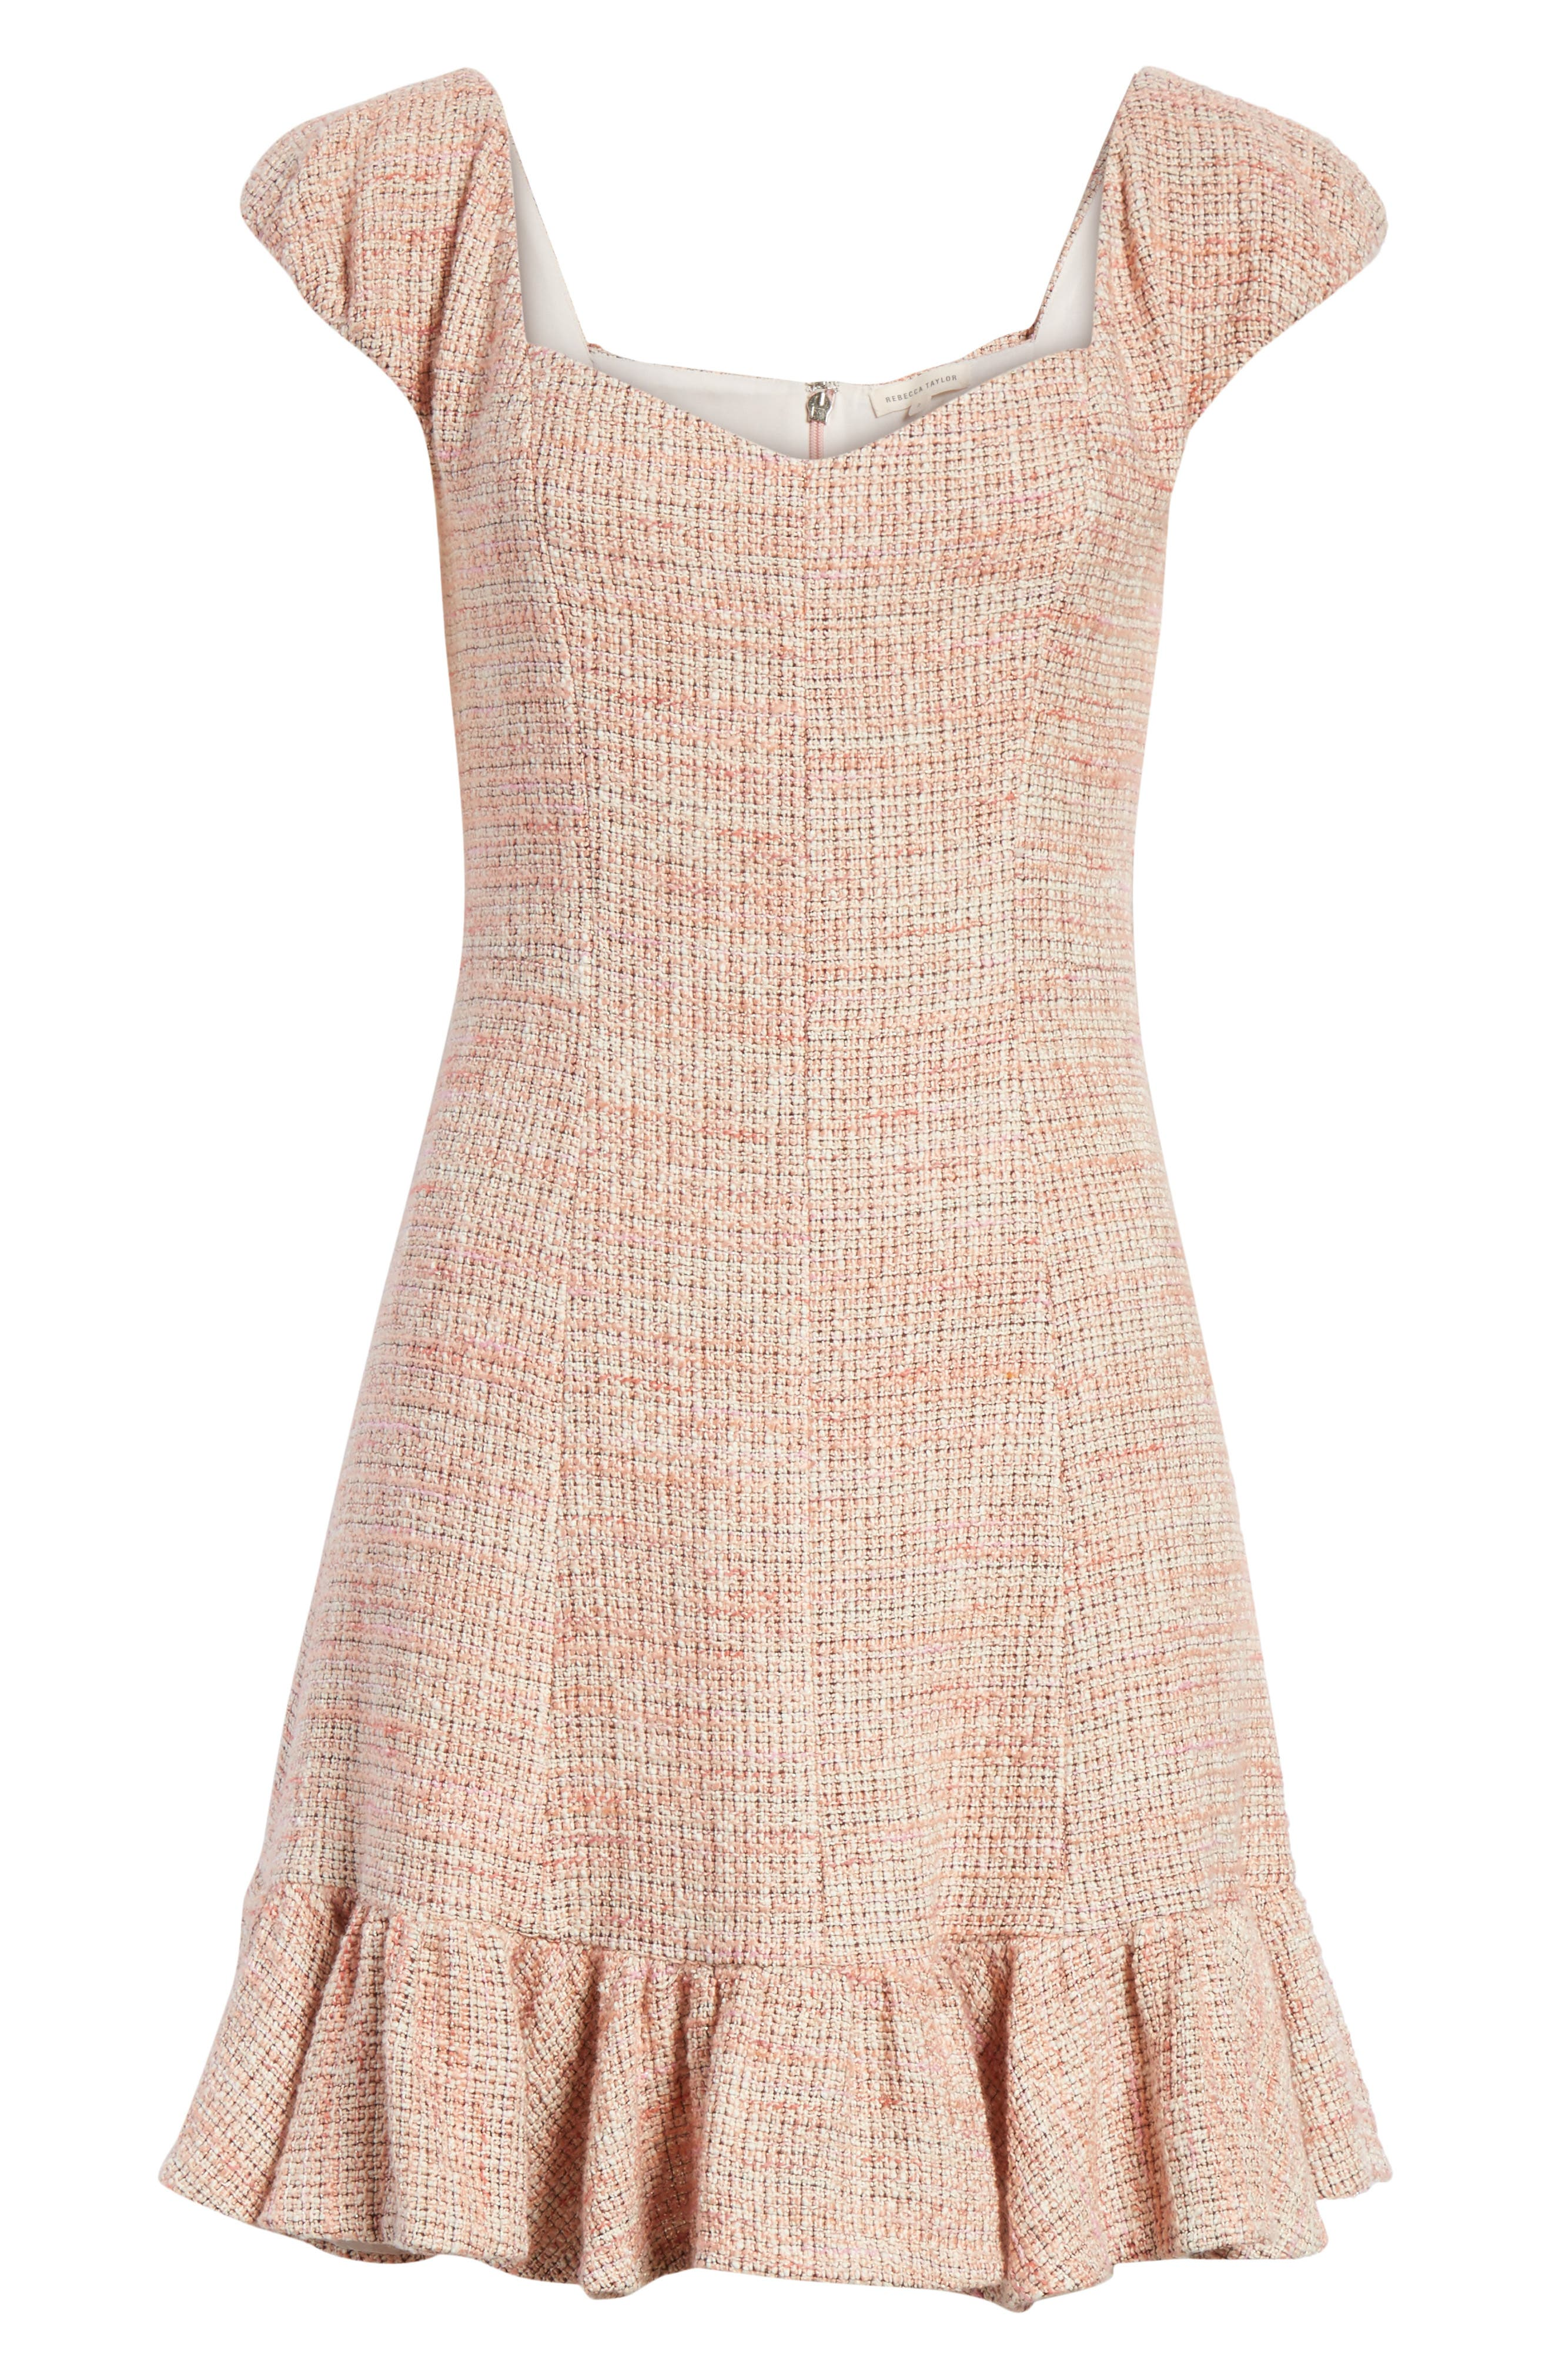 Cap Sleeve Tweed Dress,                             Alternate thumbnail 6, color,                             Rosy Nude Combo